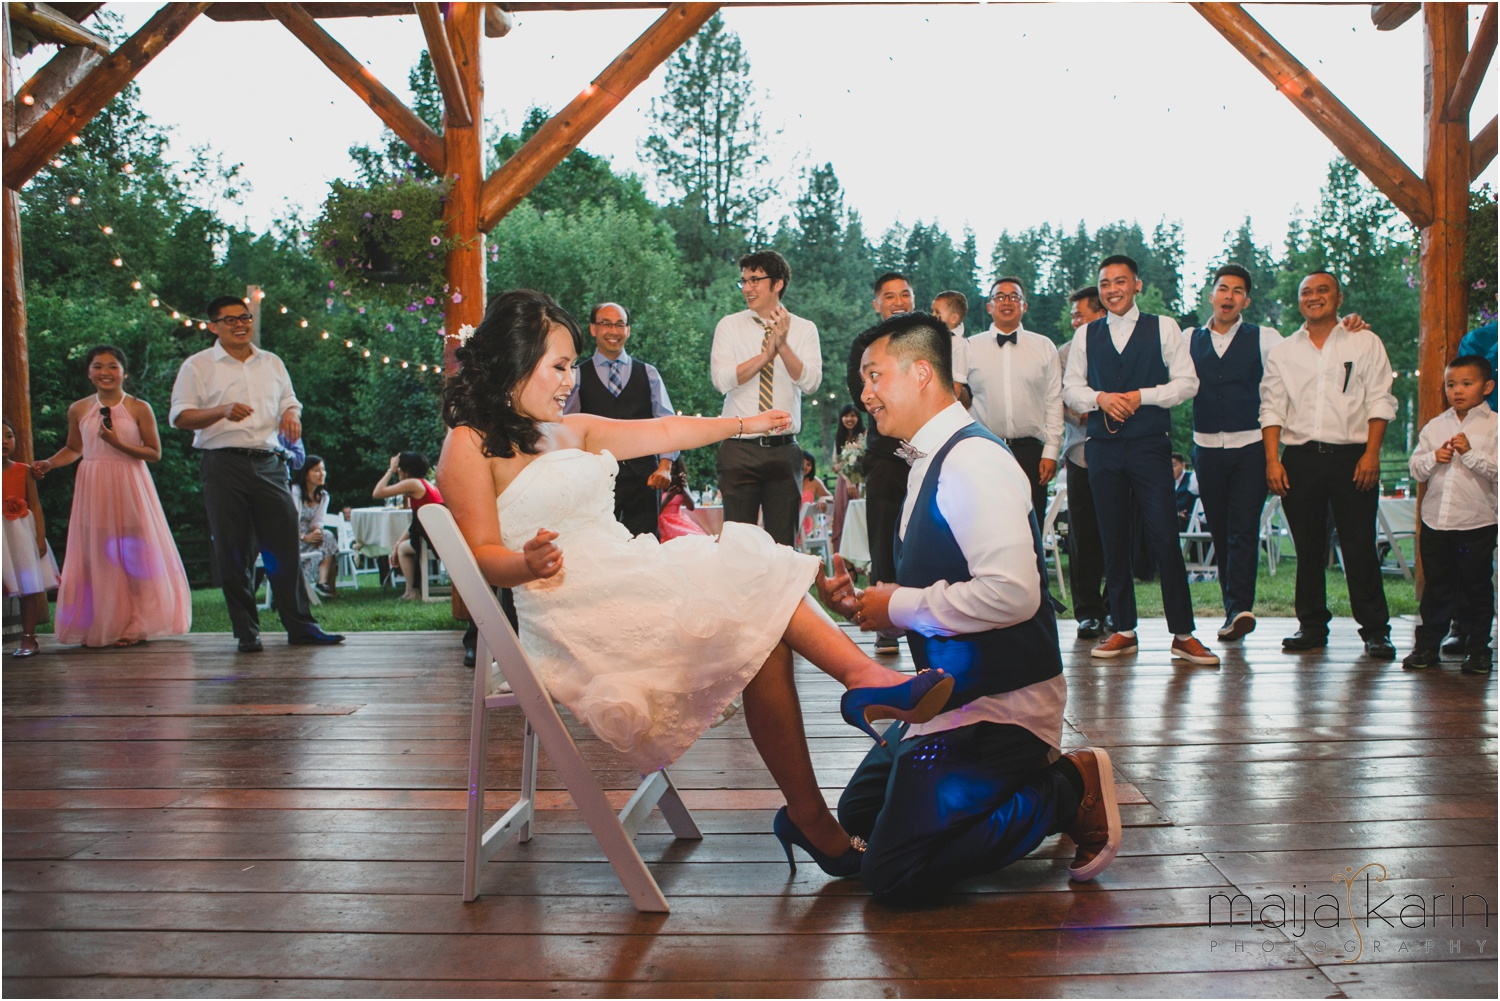 Mountain-Springs-Lodge-Leavenworth-Washington-Wedding-Photographer-Majiin-Karin-Photography_73.jpg